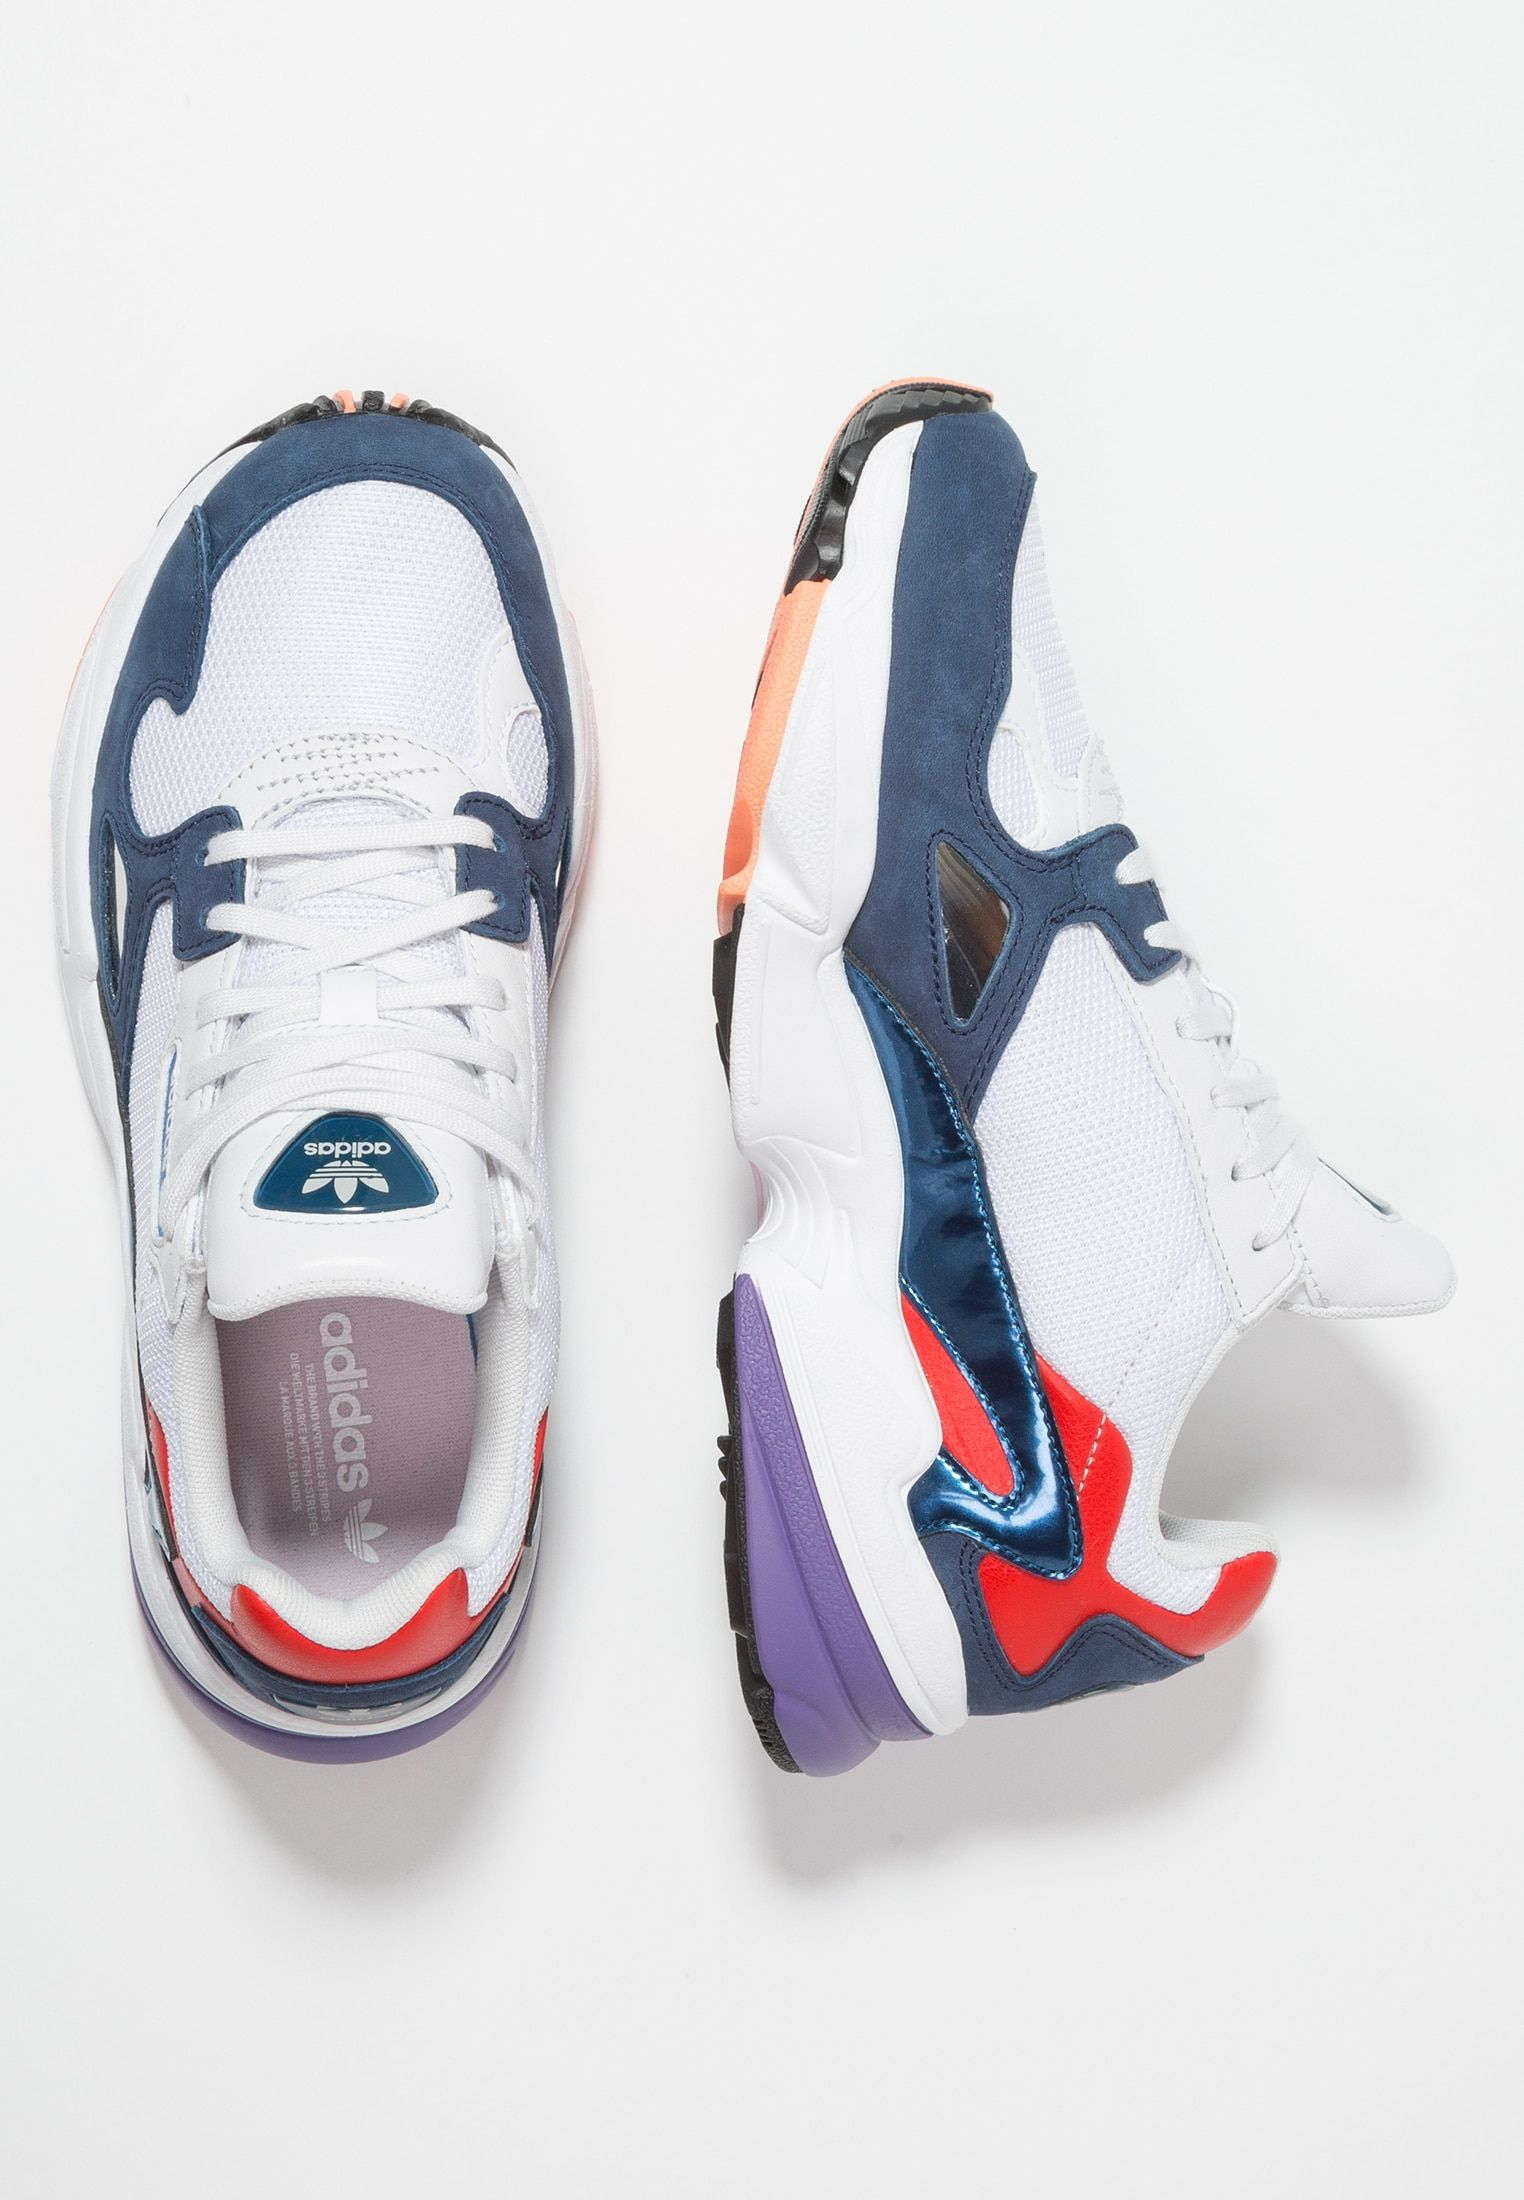 adidas Originals vit and navy Falcon sneakers in 2020